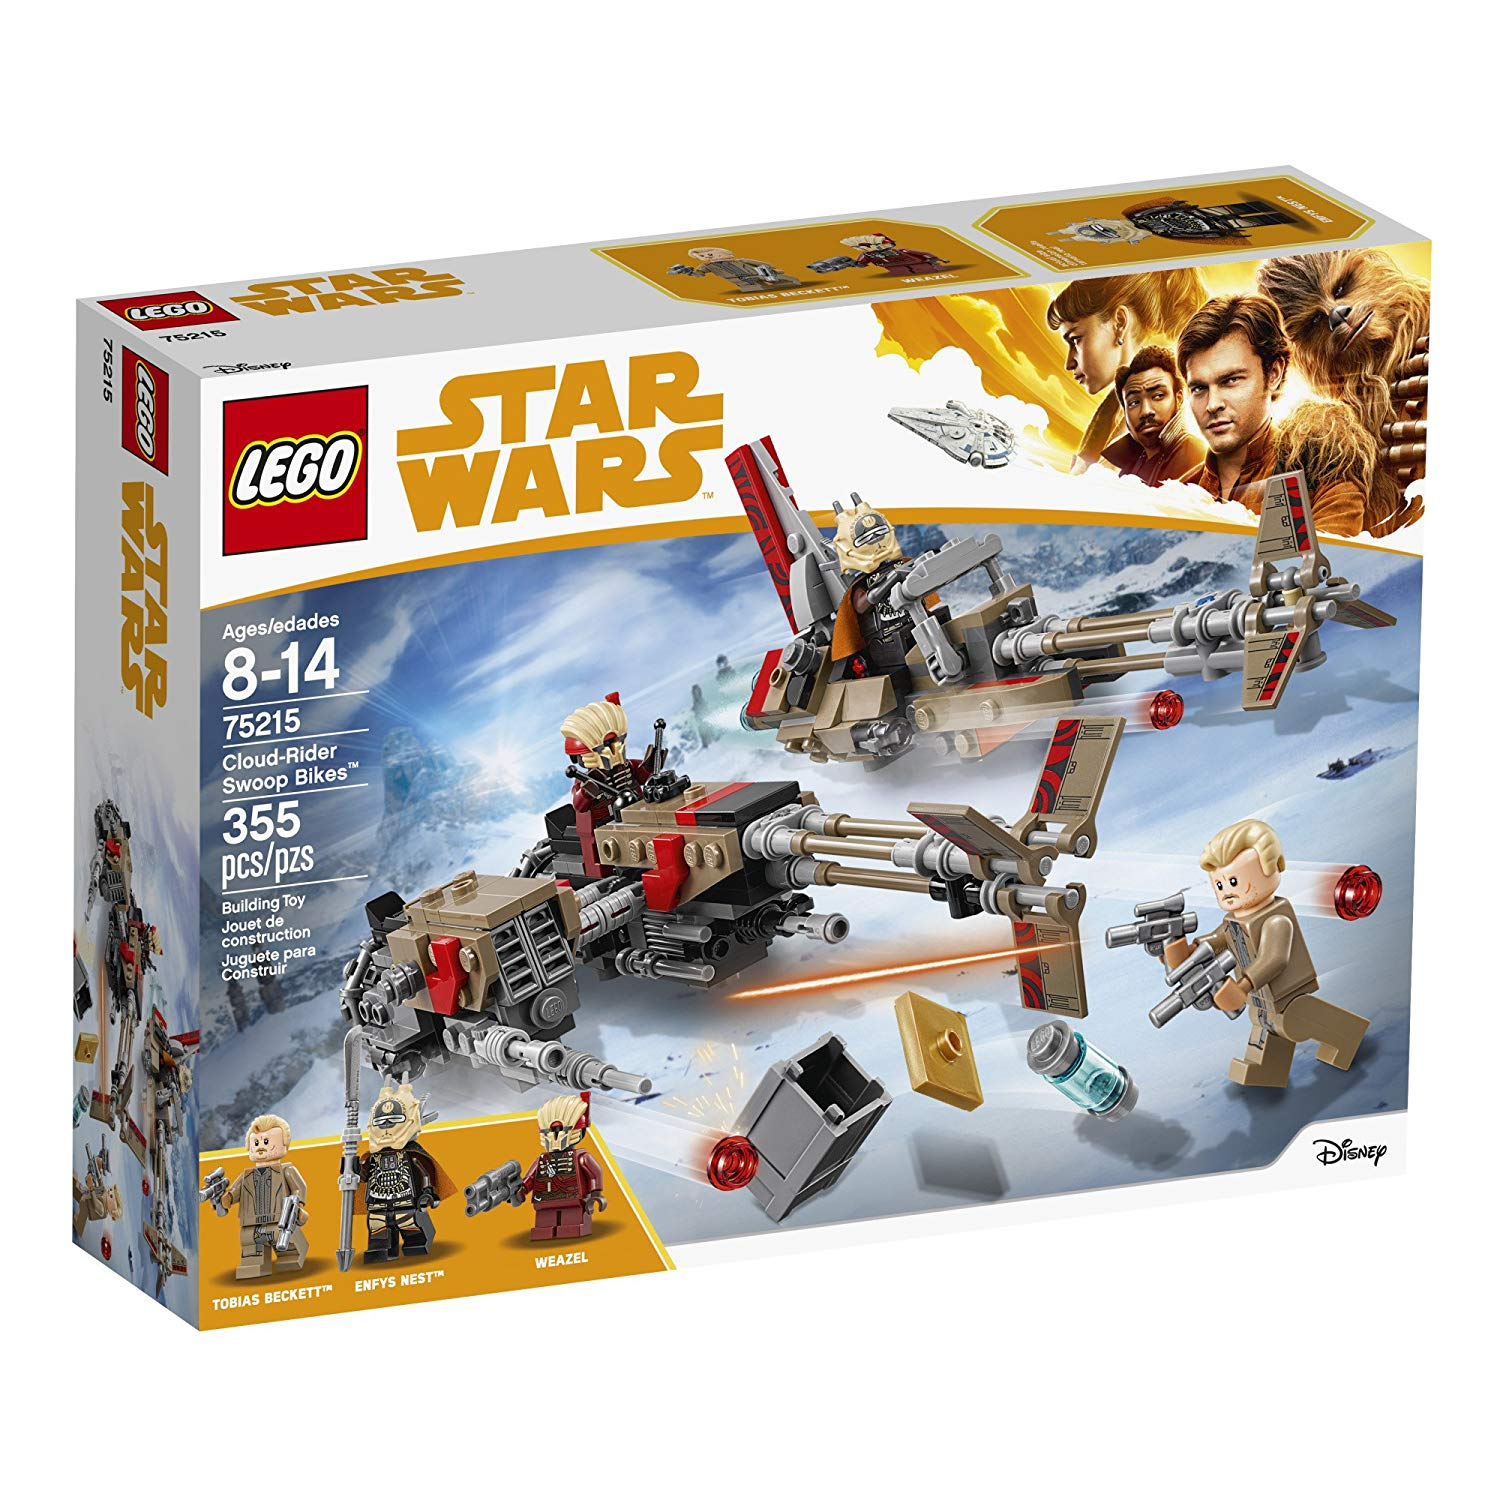 Details about LEGO Star Wars 75215 Cloud-Rider Swoop Bike Building Kit (355  Pieces)